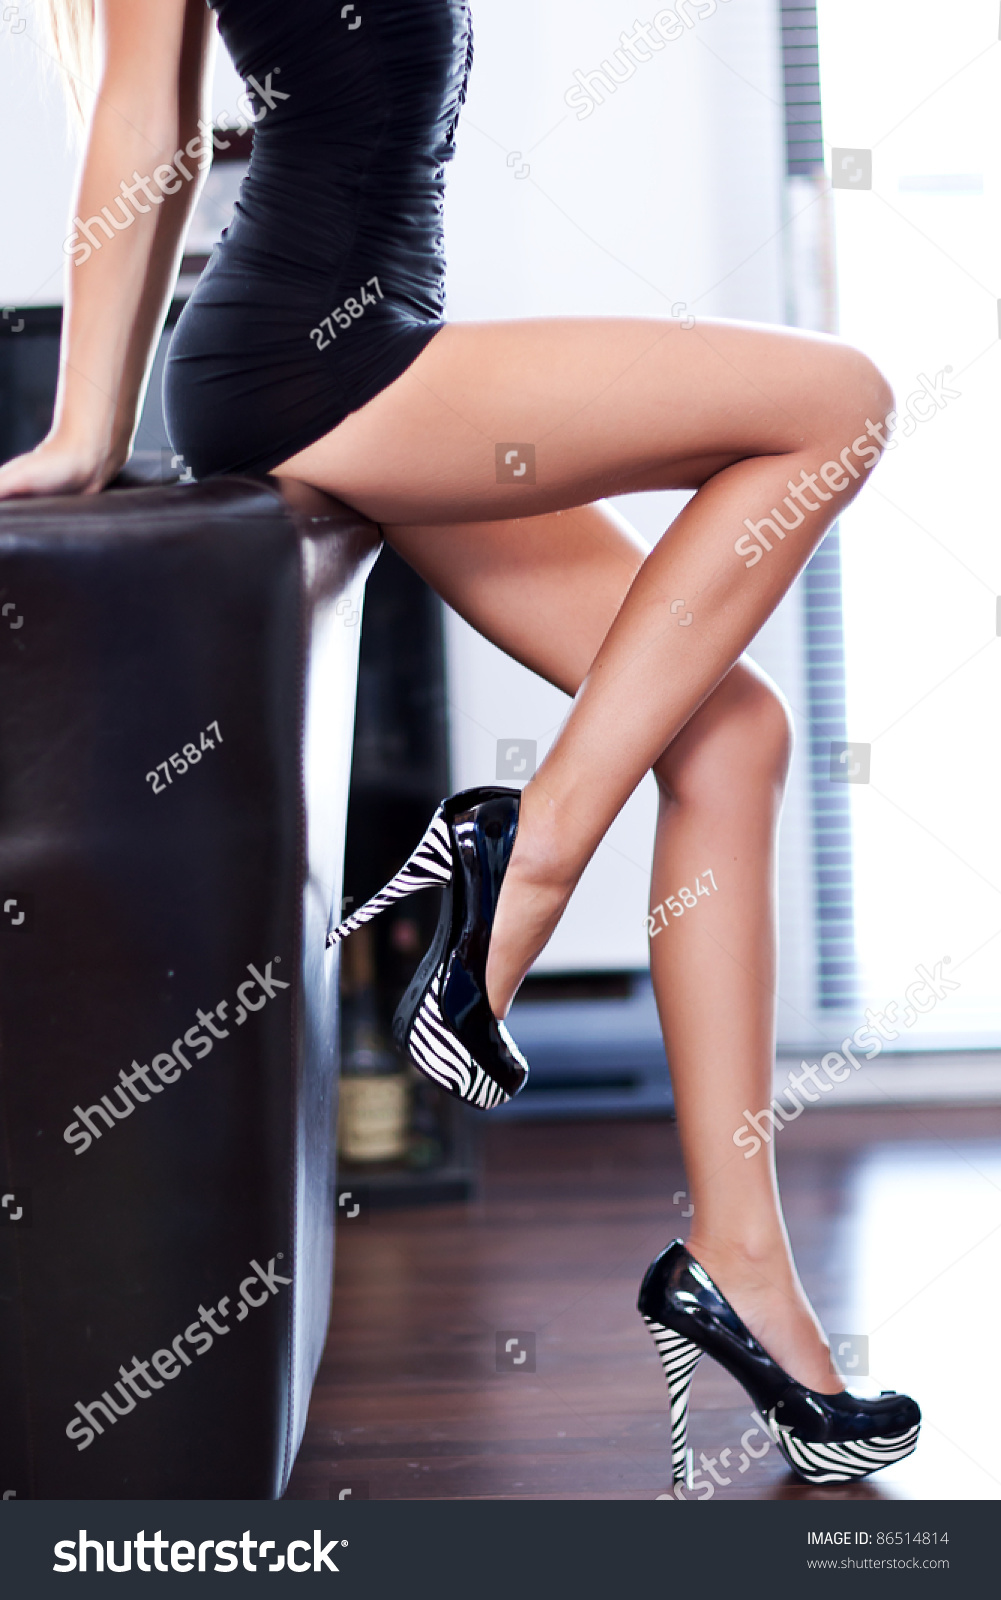 Women Beautiful Long Legs Sitting Stock Photo (Edit Now) 86514814 ... da3e0a482